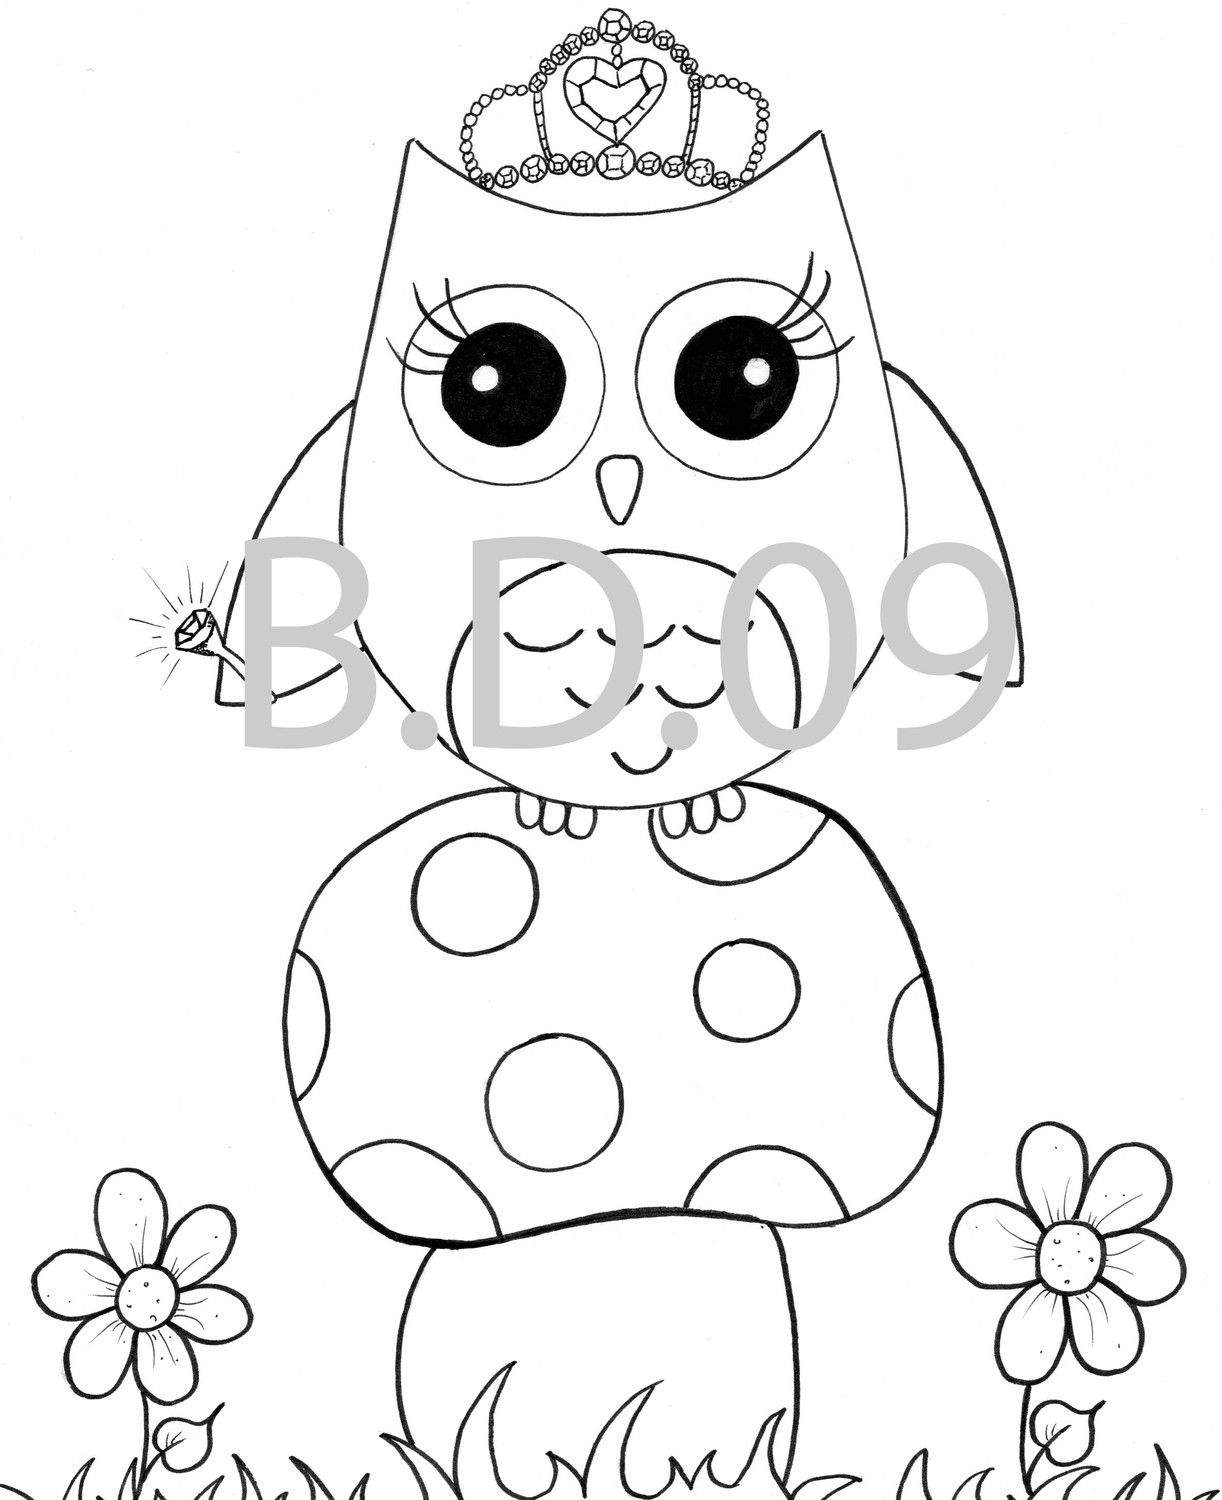 Owl themed coloring pages | FotoFuze | dibujos de buhos para ...